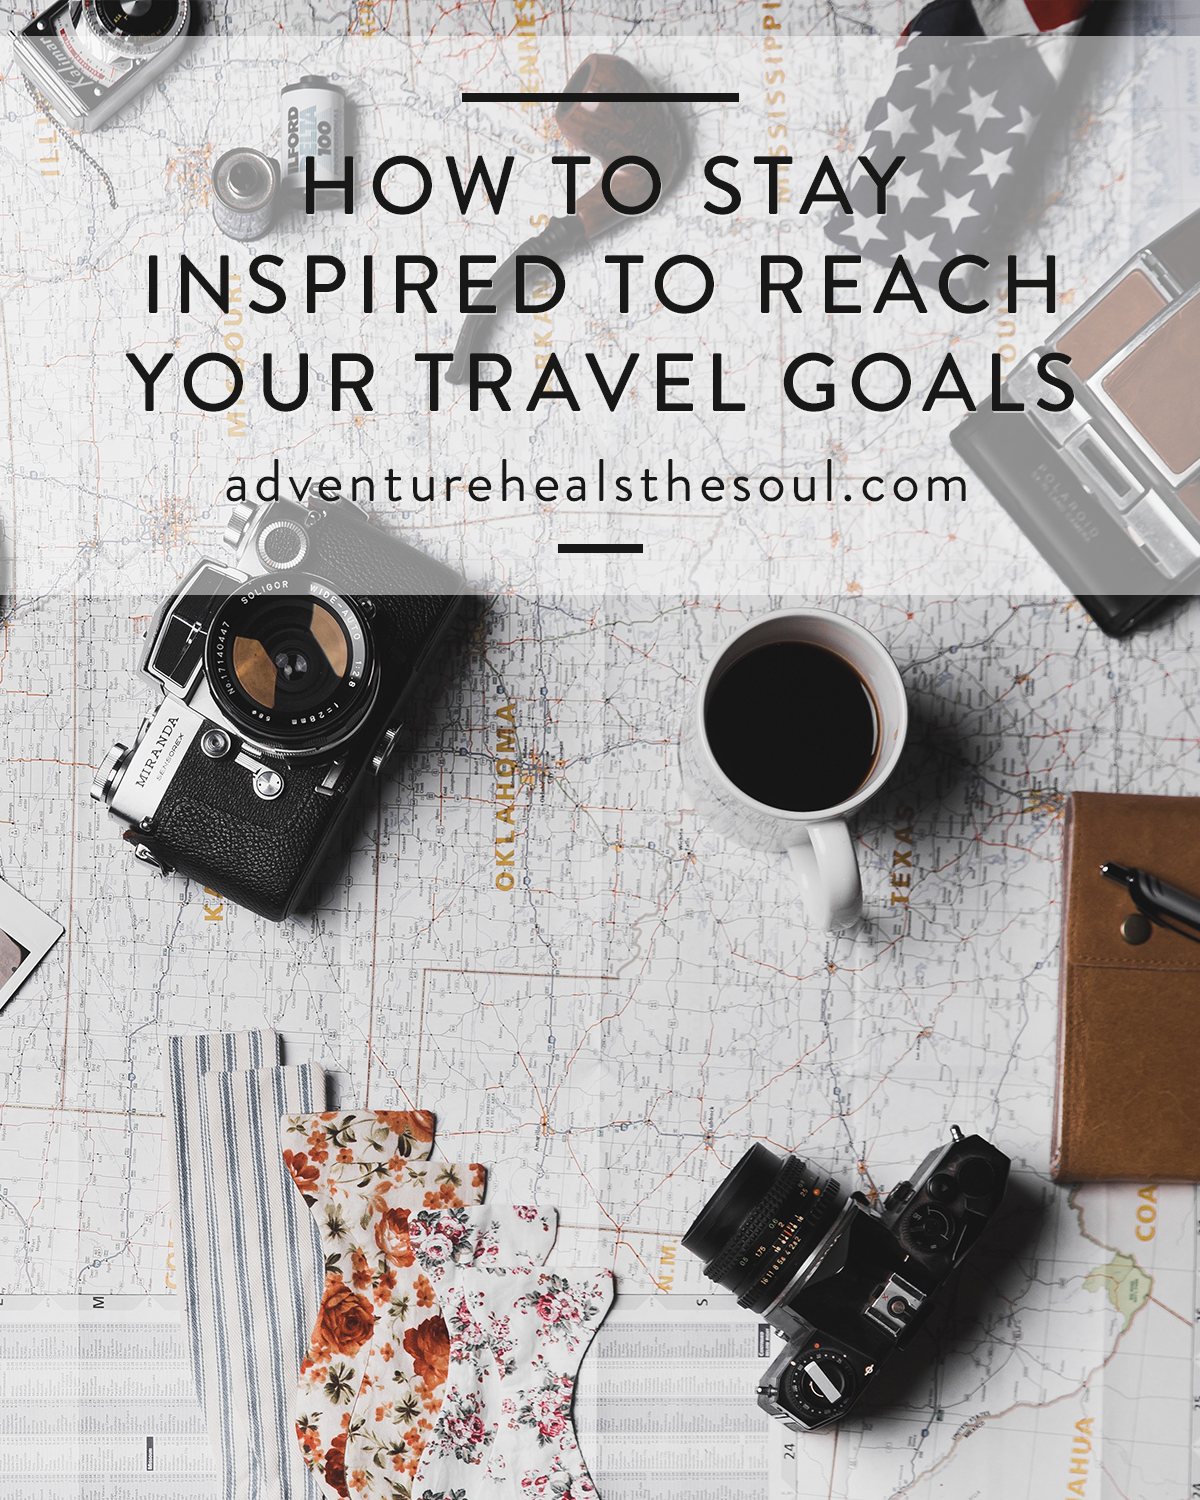 How to Stay Inspired to Reach Your Travel Goals